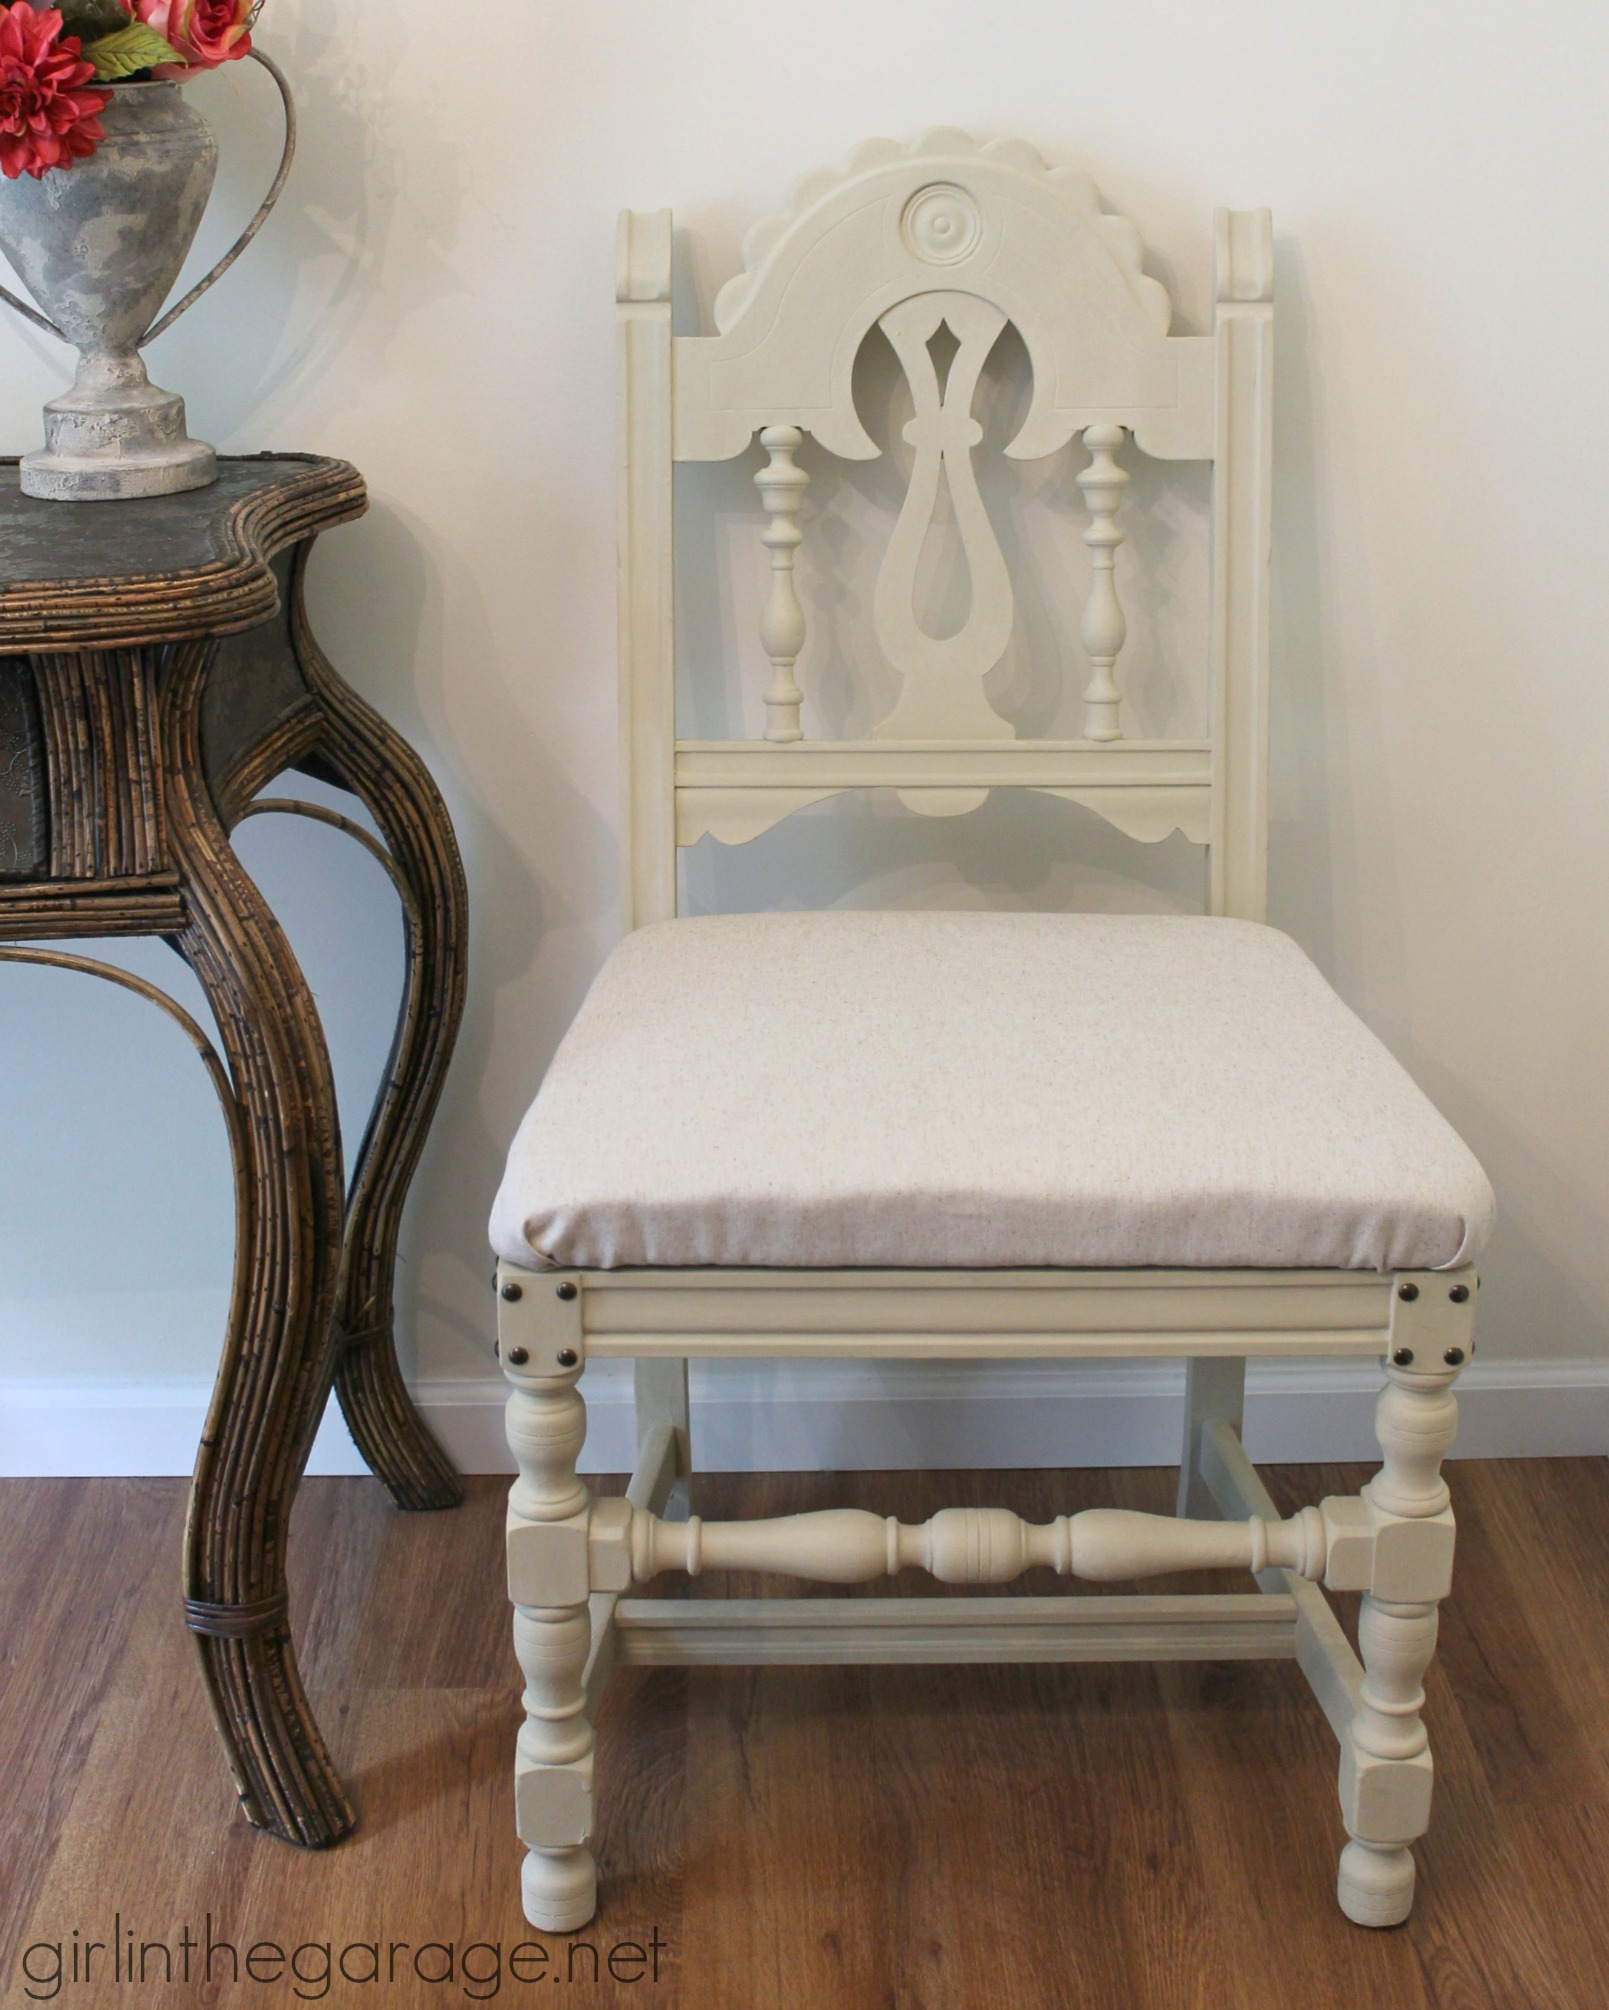 Vintage Chair Makeover with Country Grey Chalk Paint - Girl in the Garage